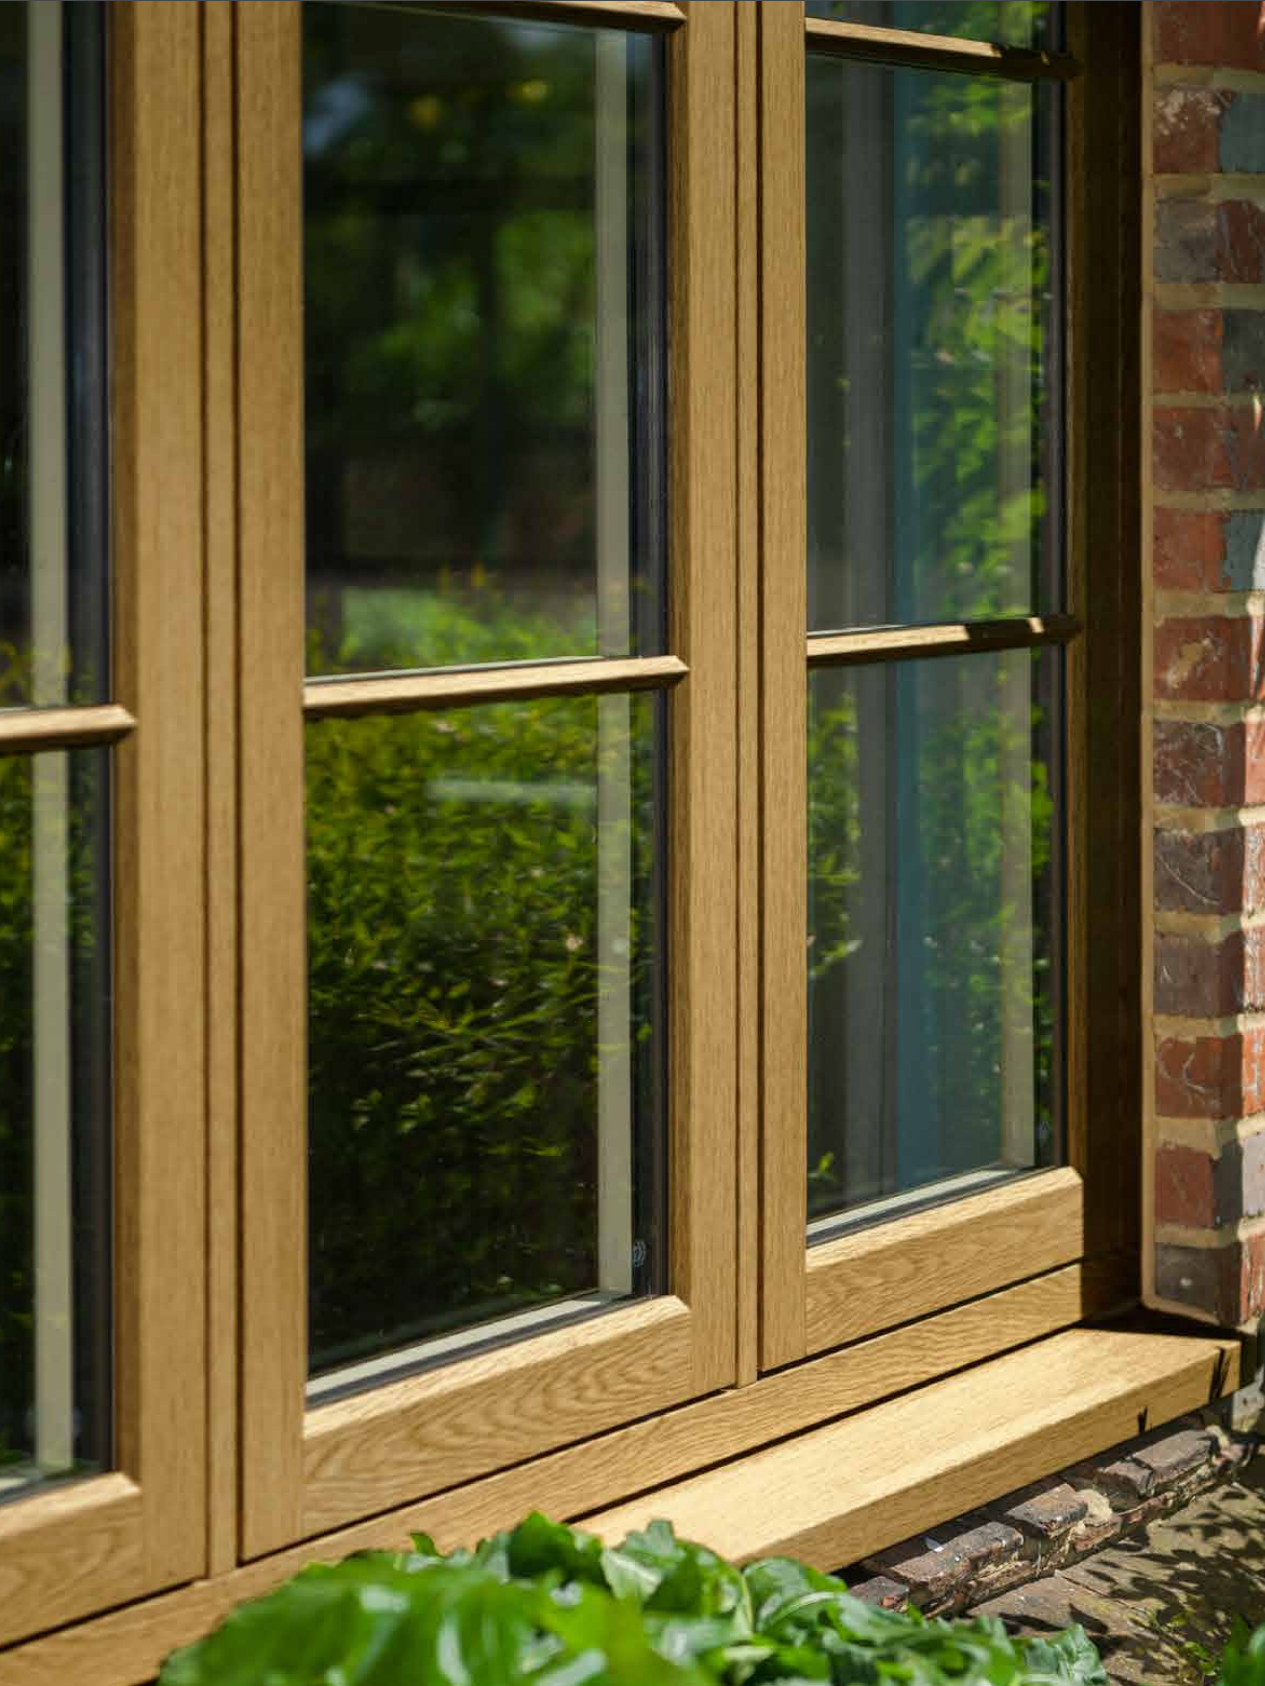 Flush Sash Timber Alternatives - Our Flush Sash 70 range of timber alternatives combines the traditional charm of timber windows with high specification UPVC units to create a striking window design that is secure and highly energy efficient.Our UPVC Flush Sash units replicate the traditional design of timber windows by using wood grain finishes and mechanical joints which replicate mortise and tenon construction.SecurityFlush Sash windows come with high performance security systems which outperform that of traditional timber models. A shoot-bolt security mechanism and a night latch come as standard meaning you can rest assured that your home is secure.Energy EfficiencyThe Flush Sash range delivers fantastic thermal performance by using 24mm double glazed units.